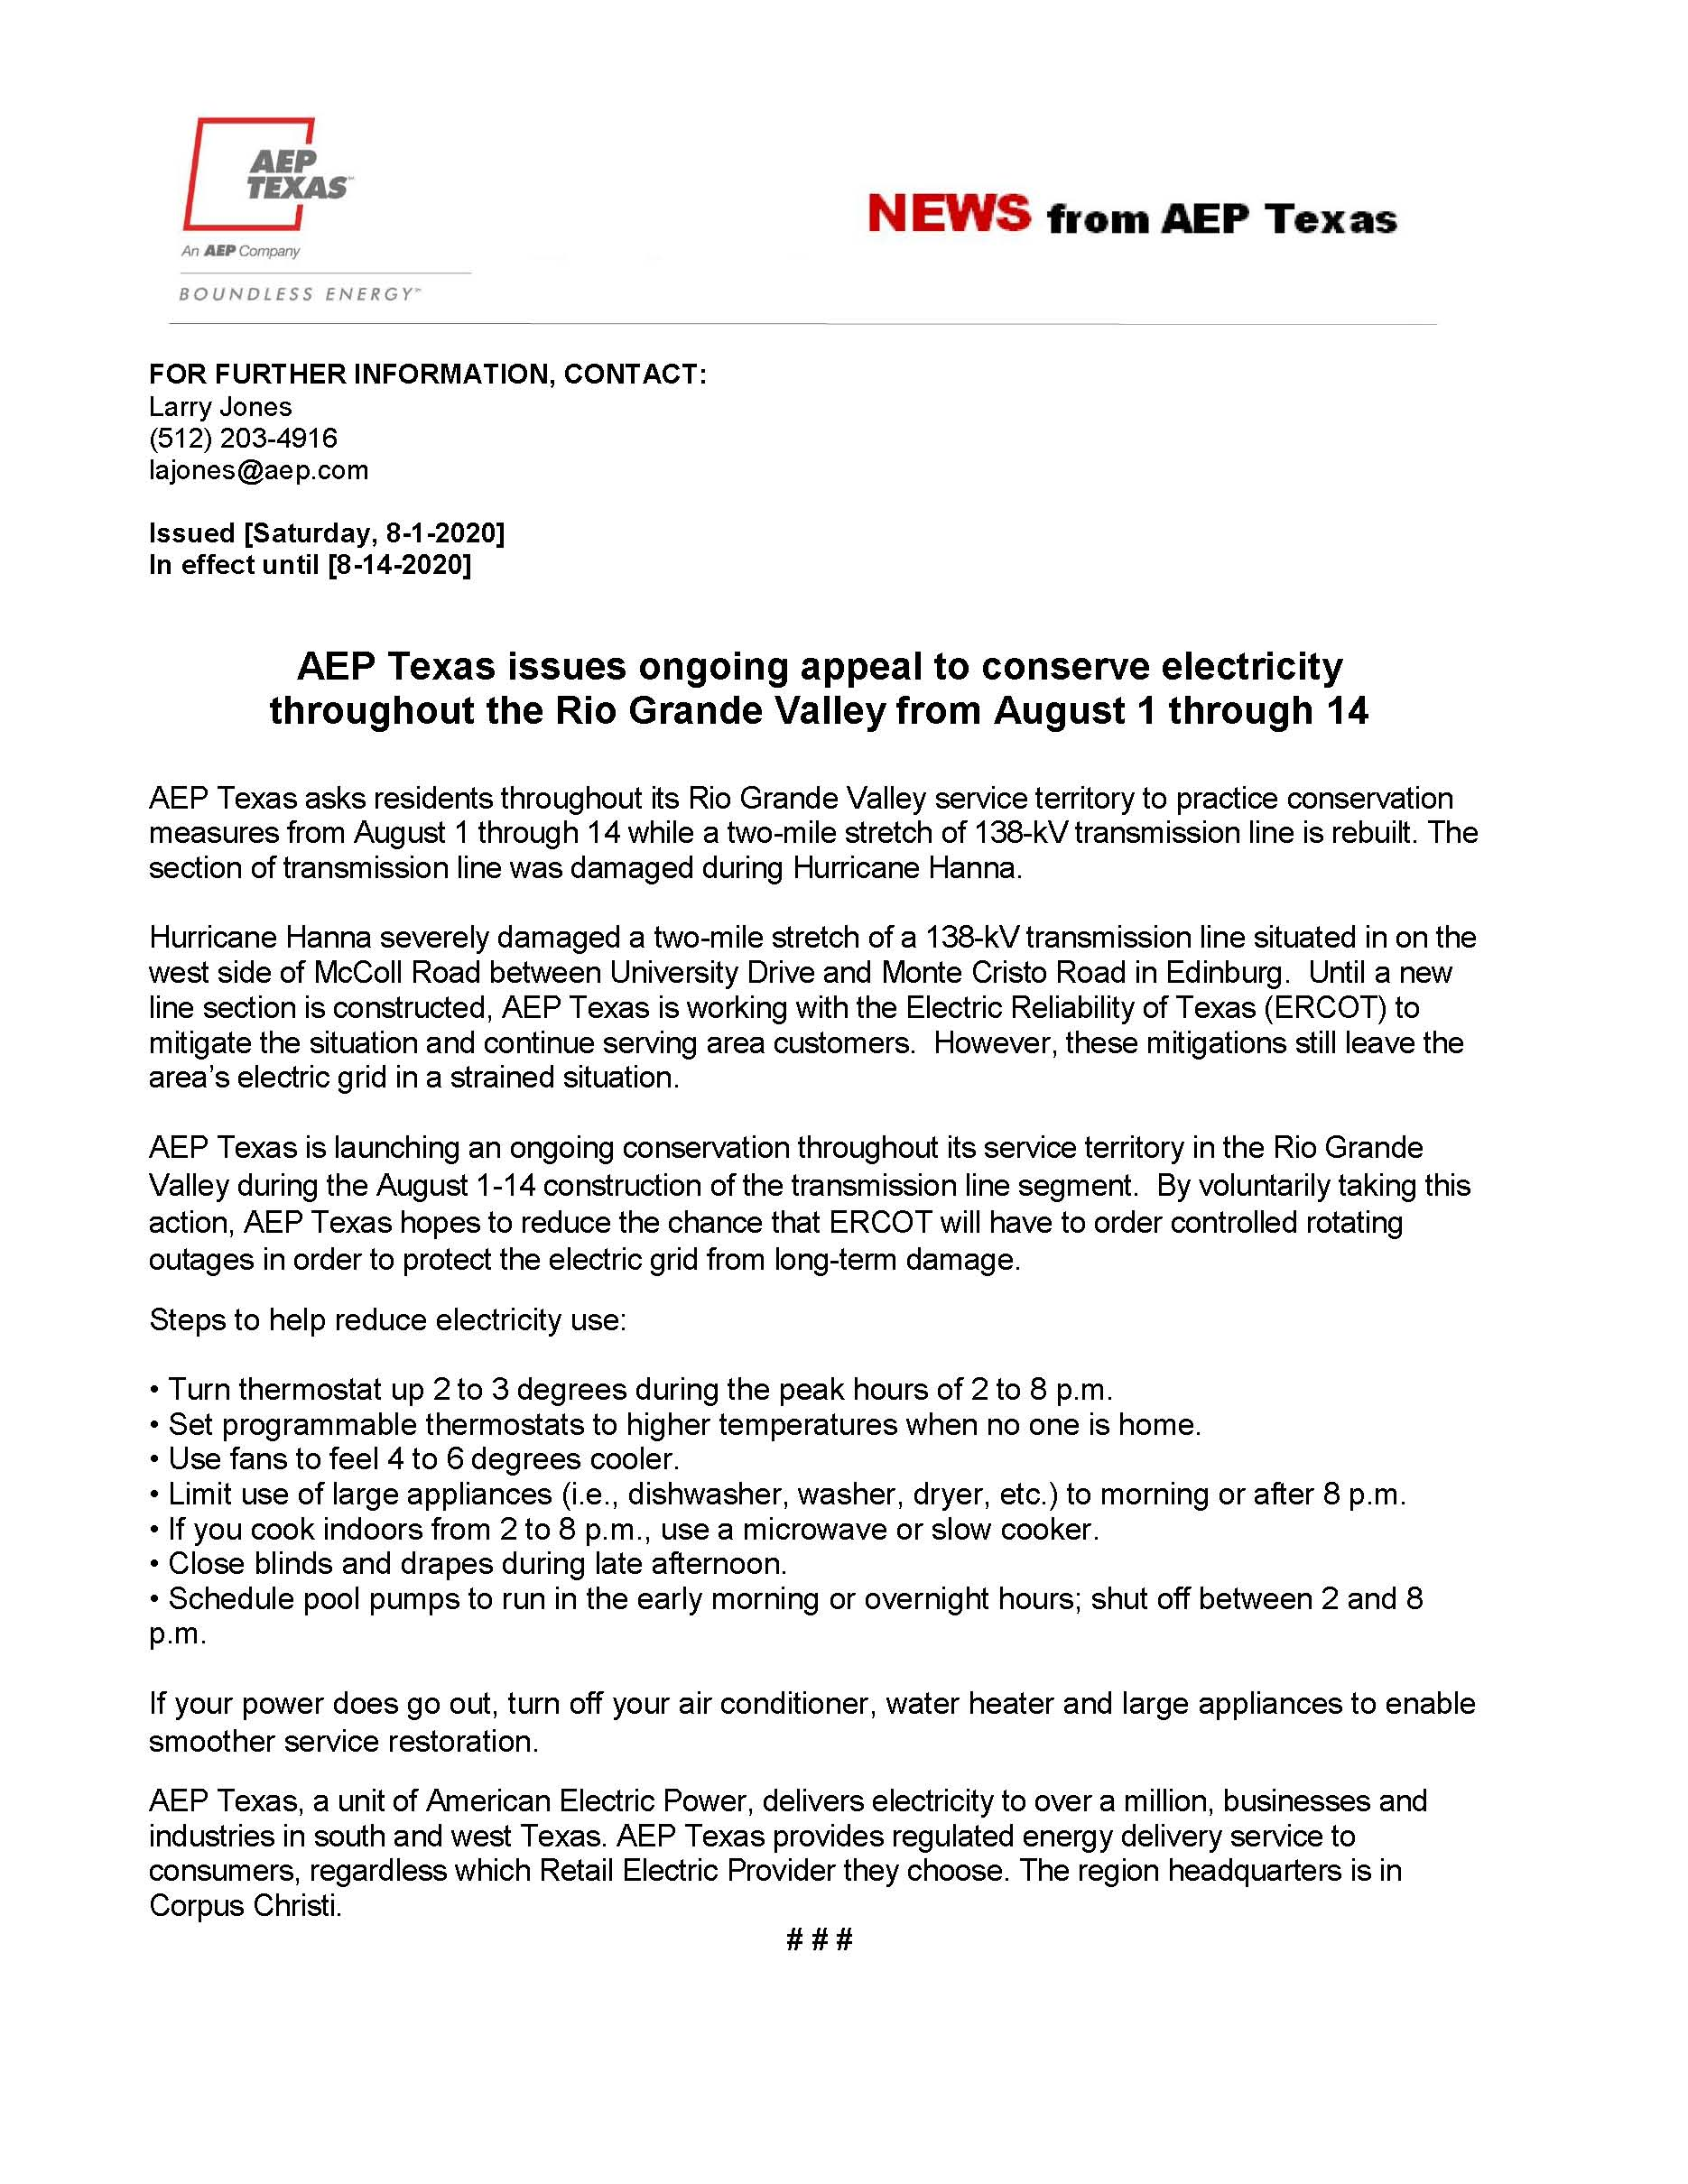 AEP Texas Requests Voluntary Conservation of Electricity